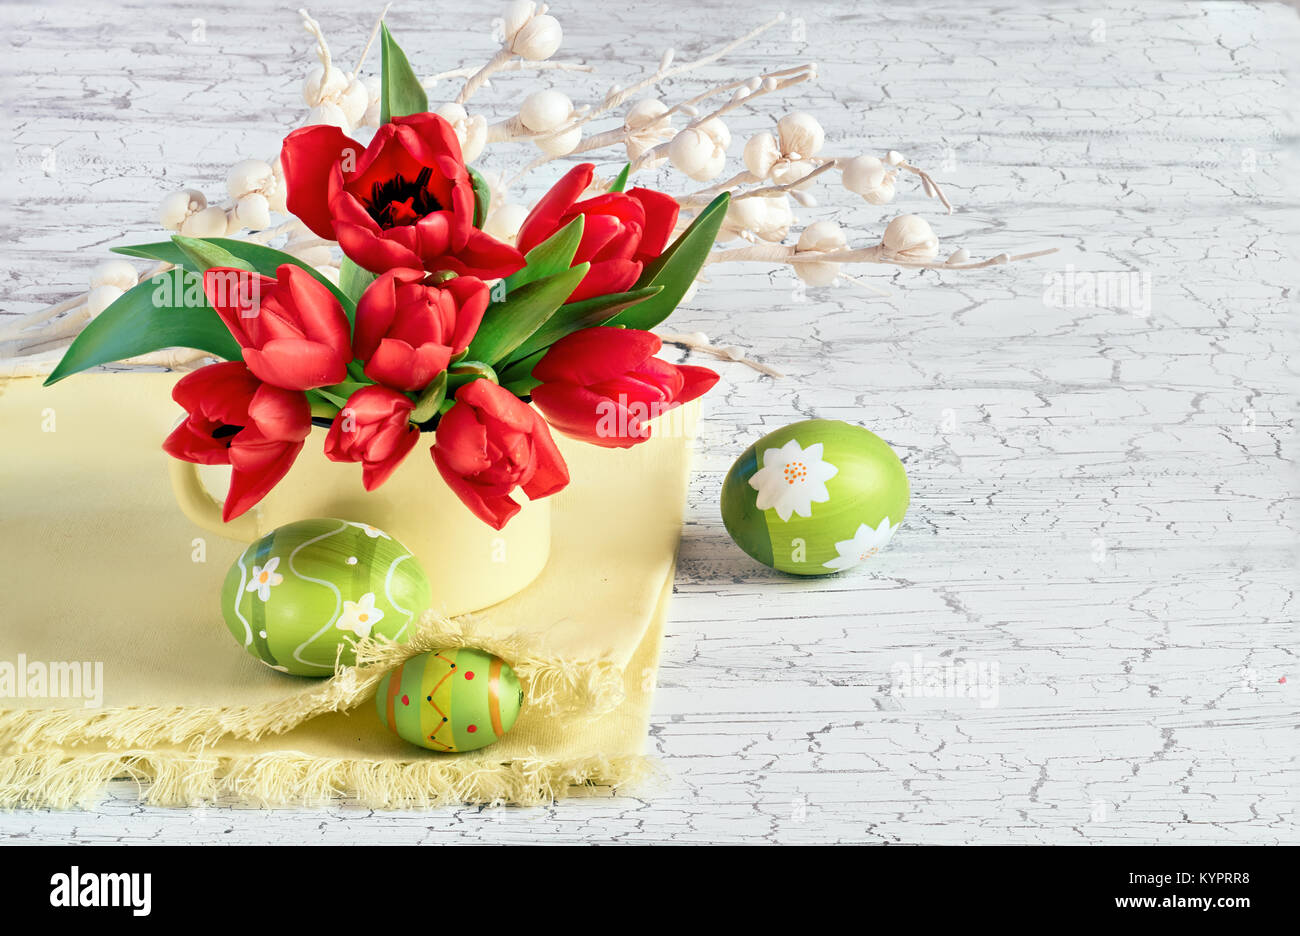 Red Tulips With Luight Green Easter Eggs On White Cracked Background